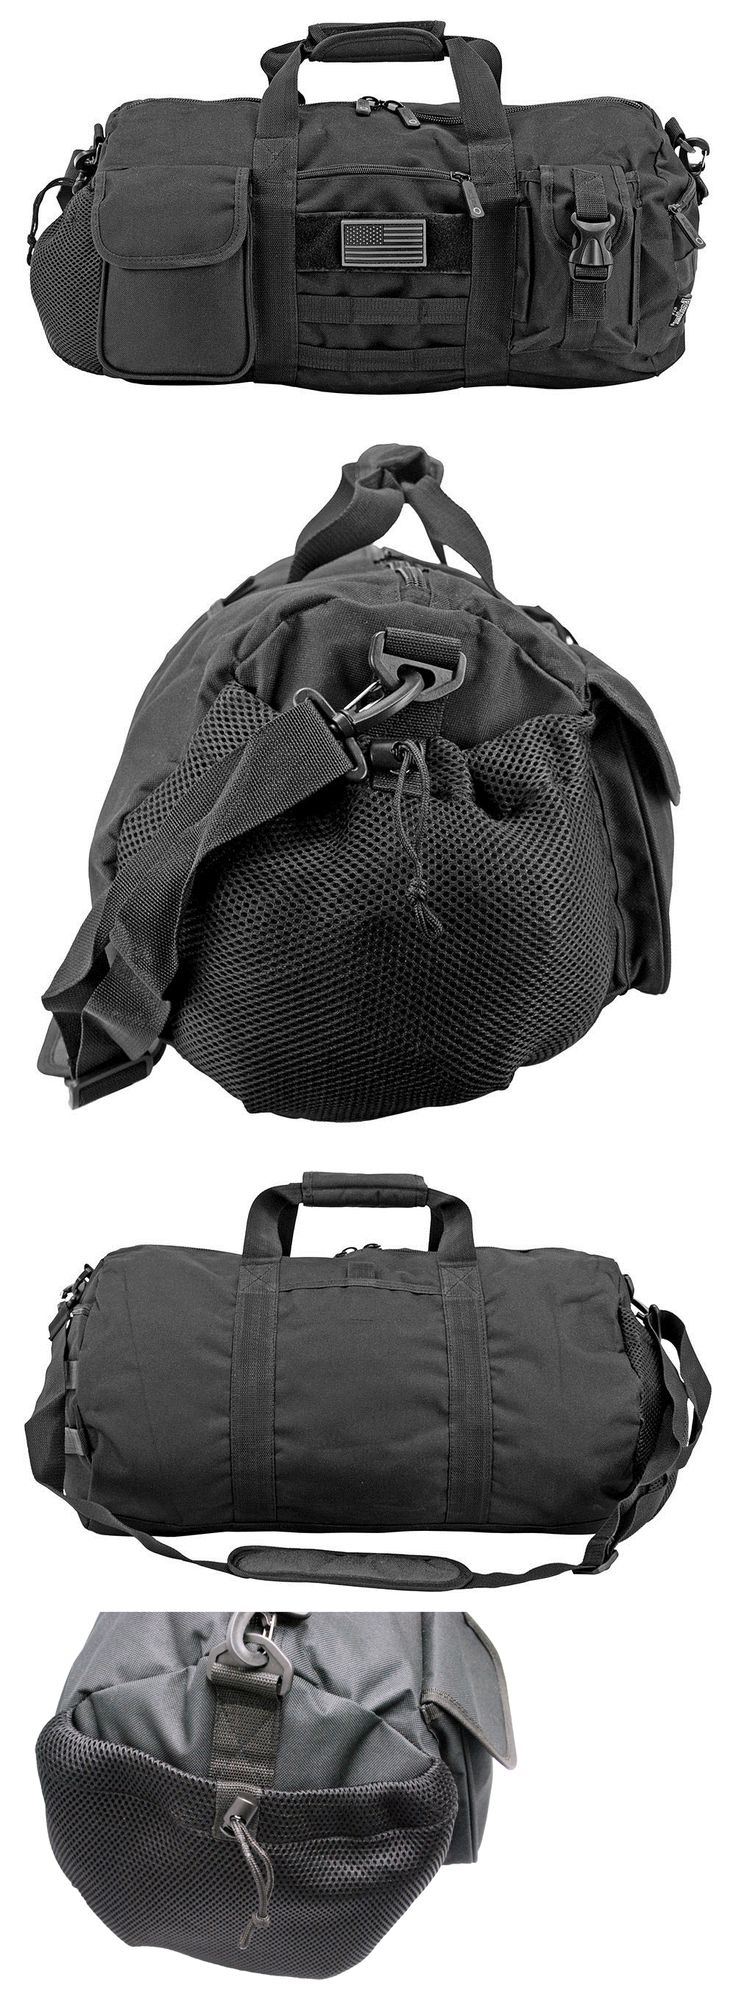 Hunting Bags and Packs 52503: 20 Tactical Duffle Bag - Black 20 X 11 X 11 -> BUY IT NOW ONLY: $31.45 on eBay!